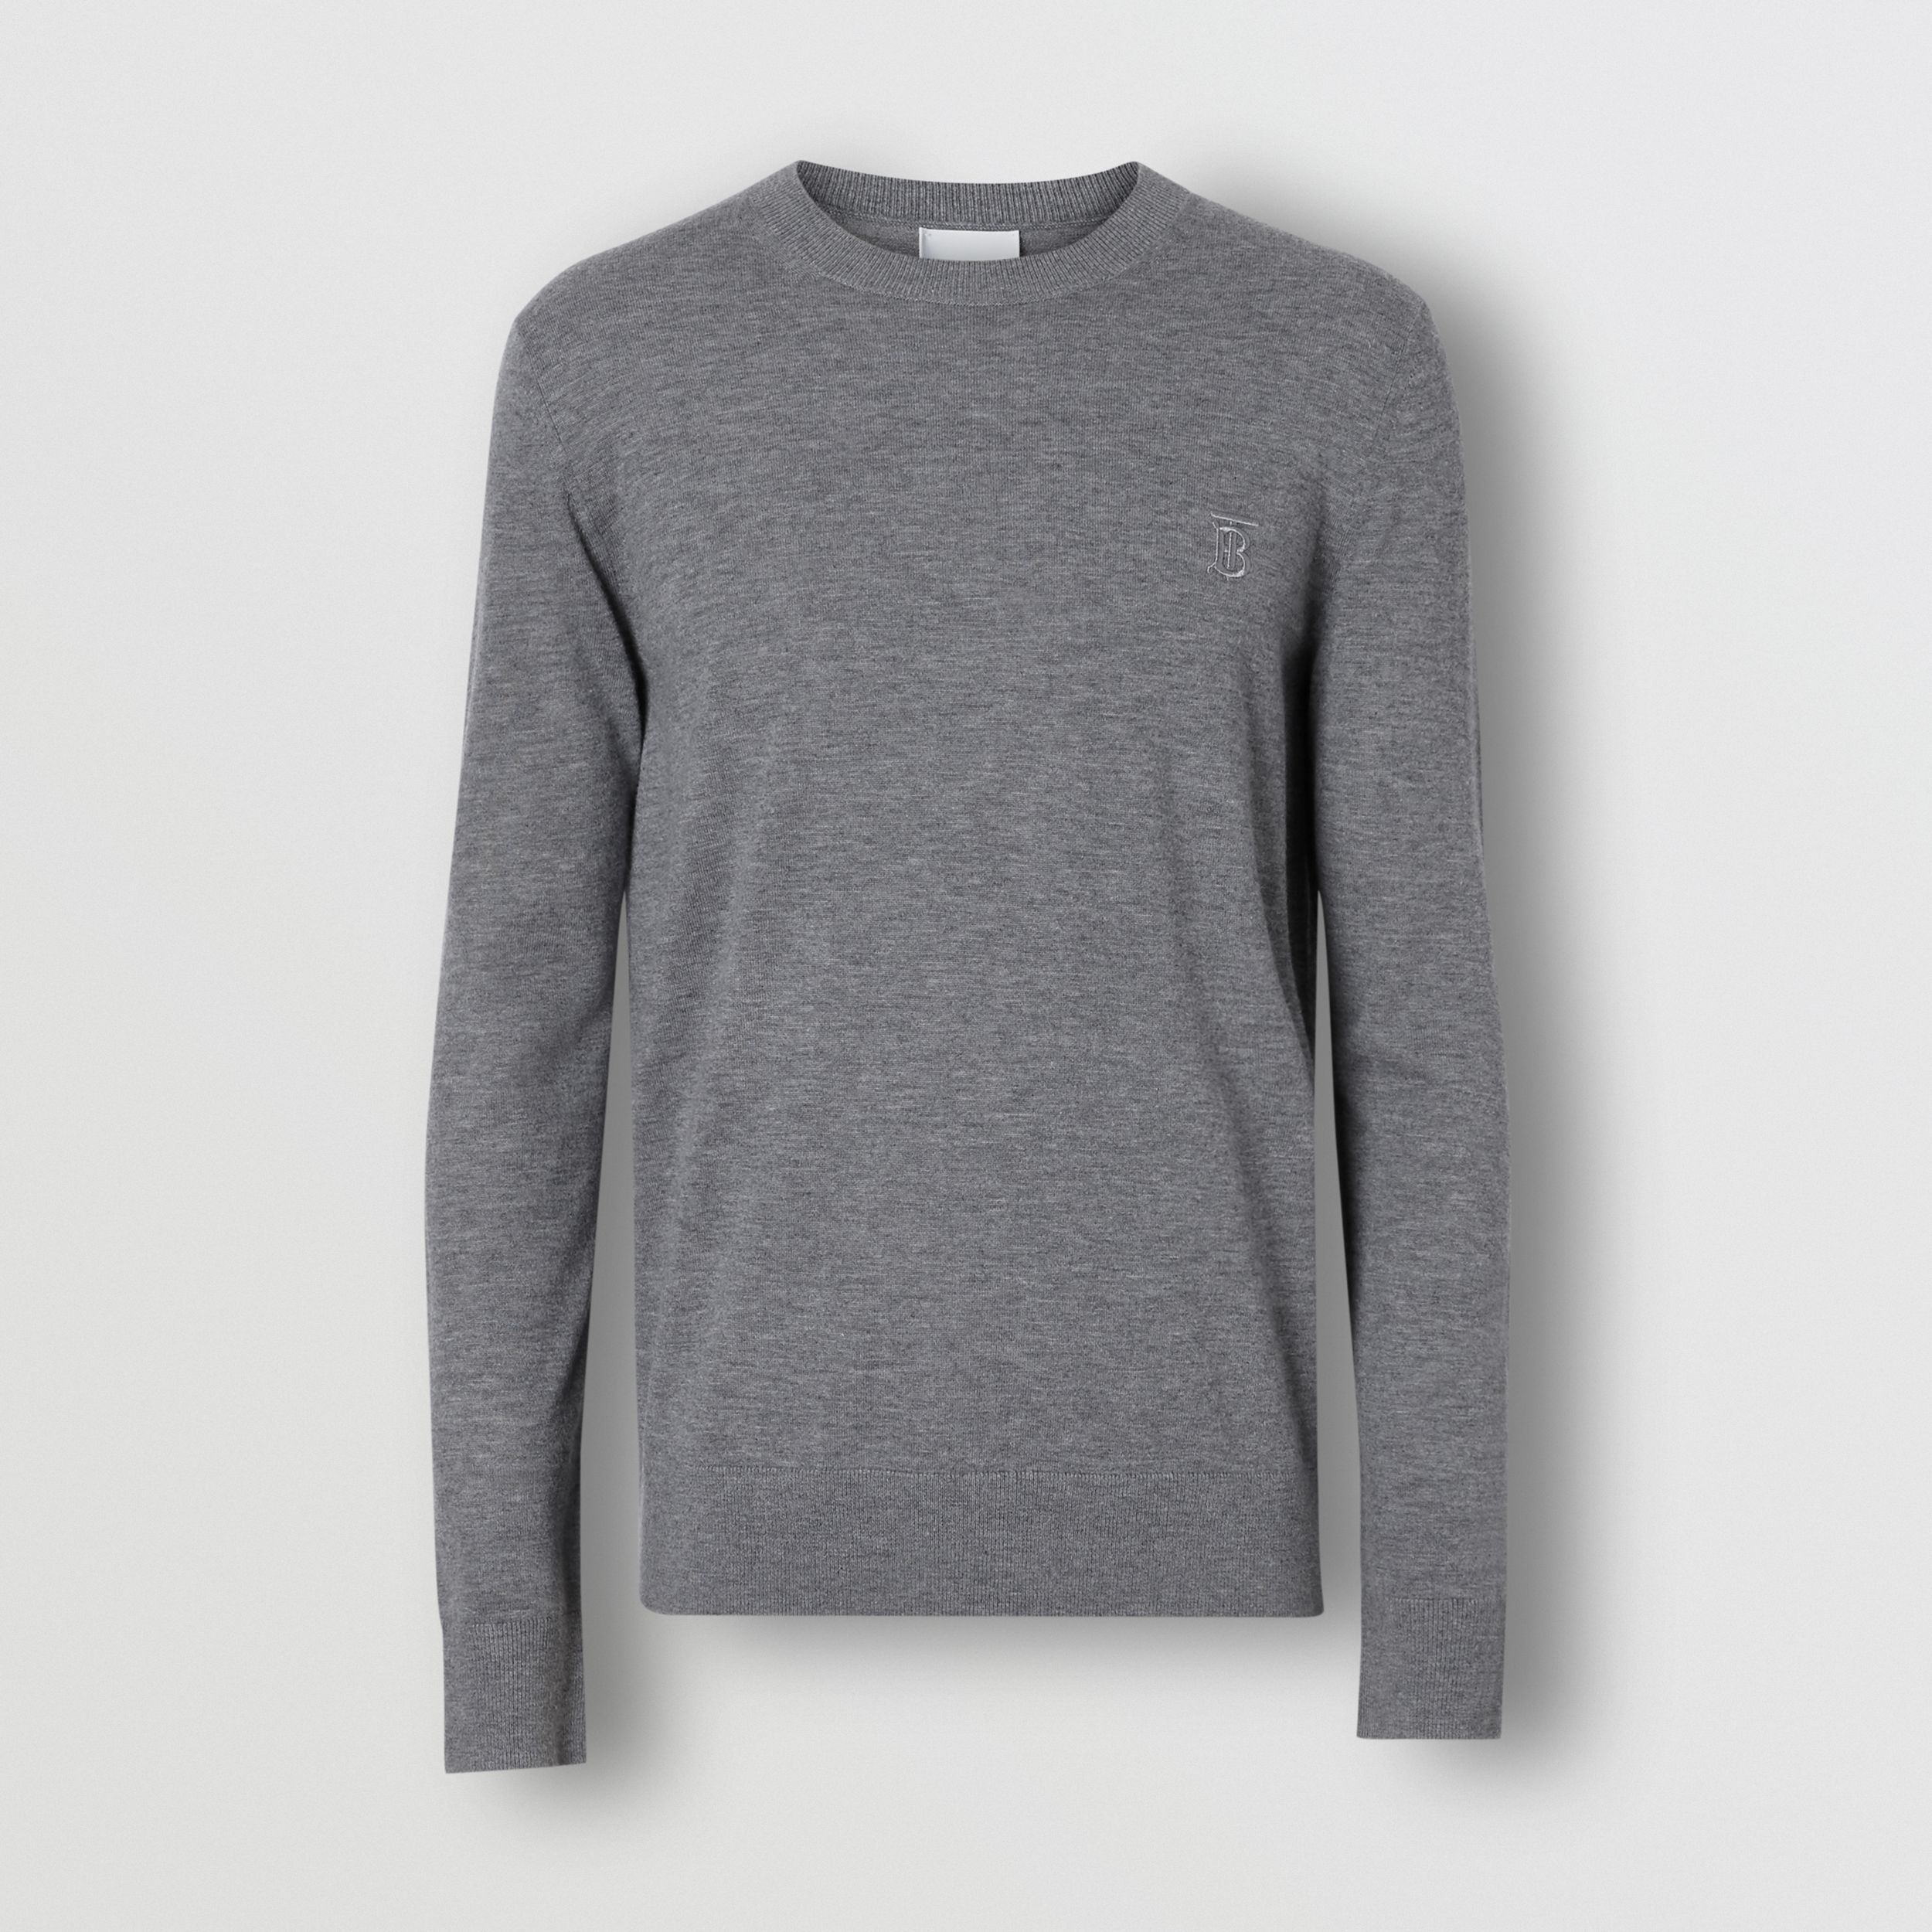 Monogram Motif Cashmere Sweater in Pale Grey Melange - Men | Burberry - 4